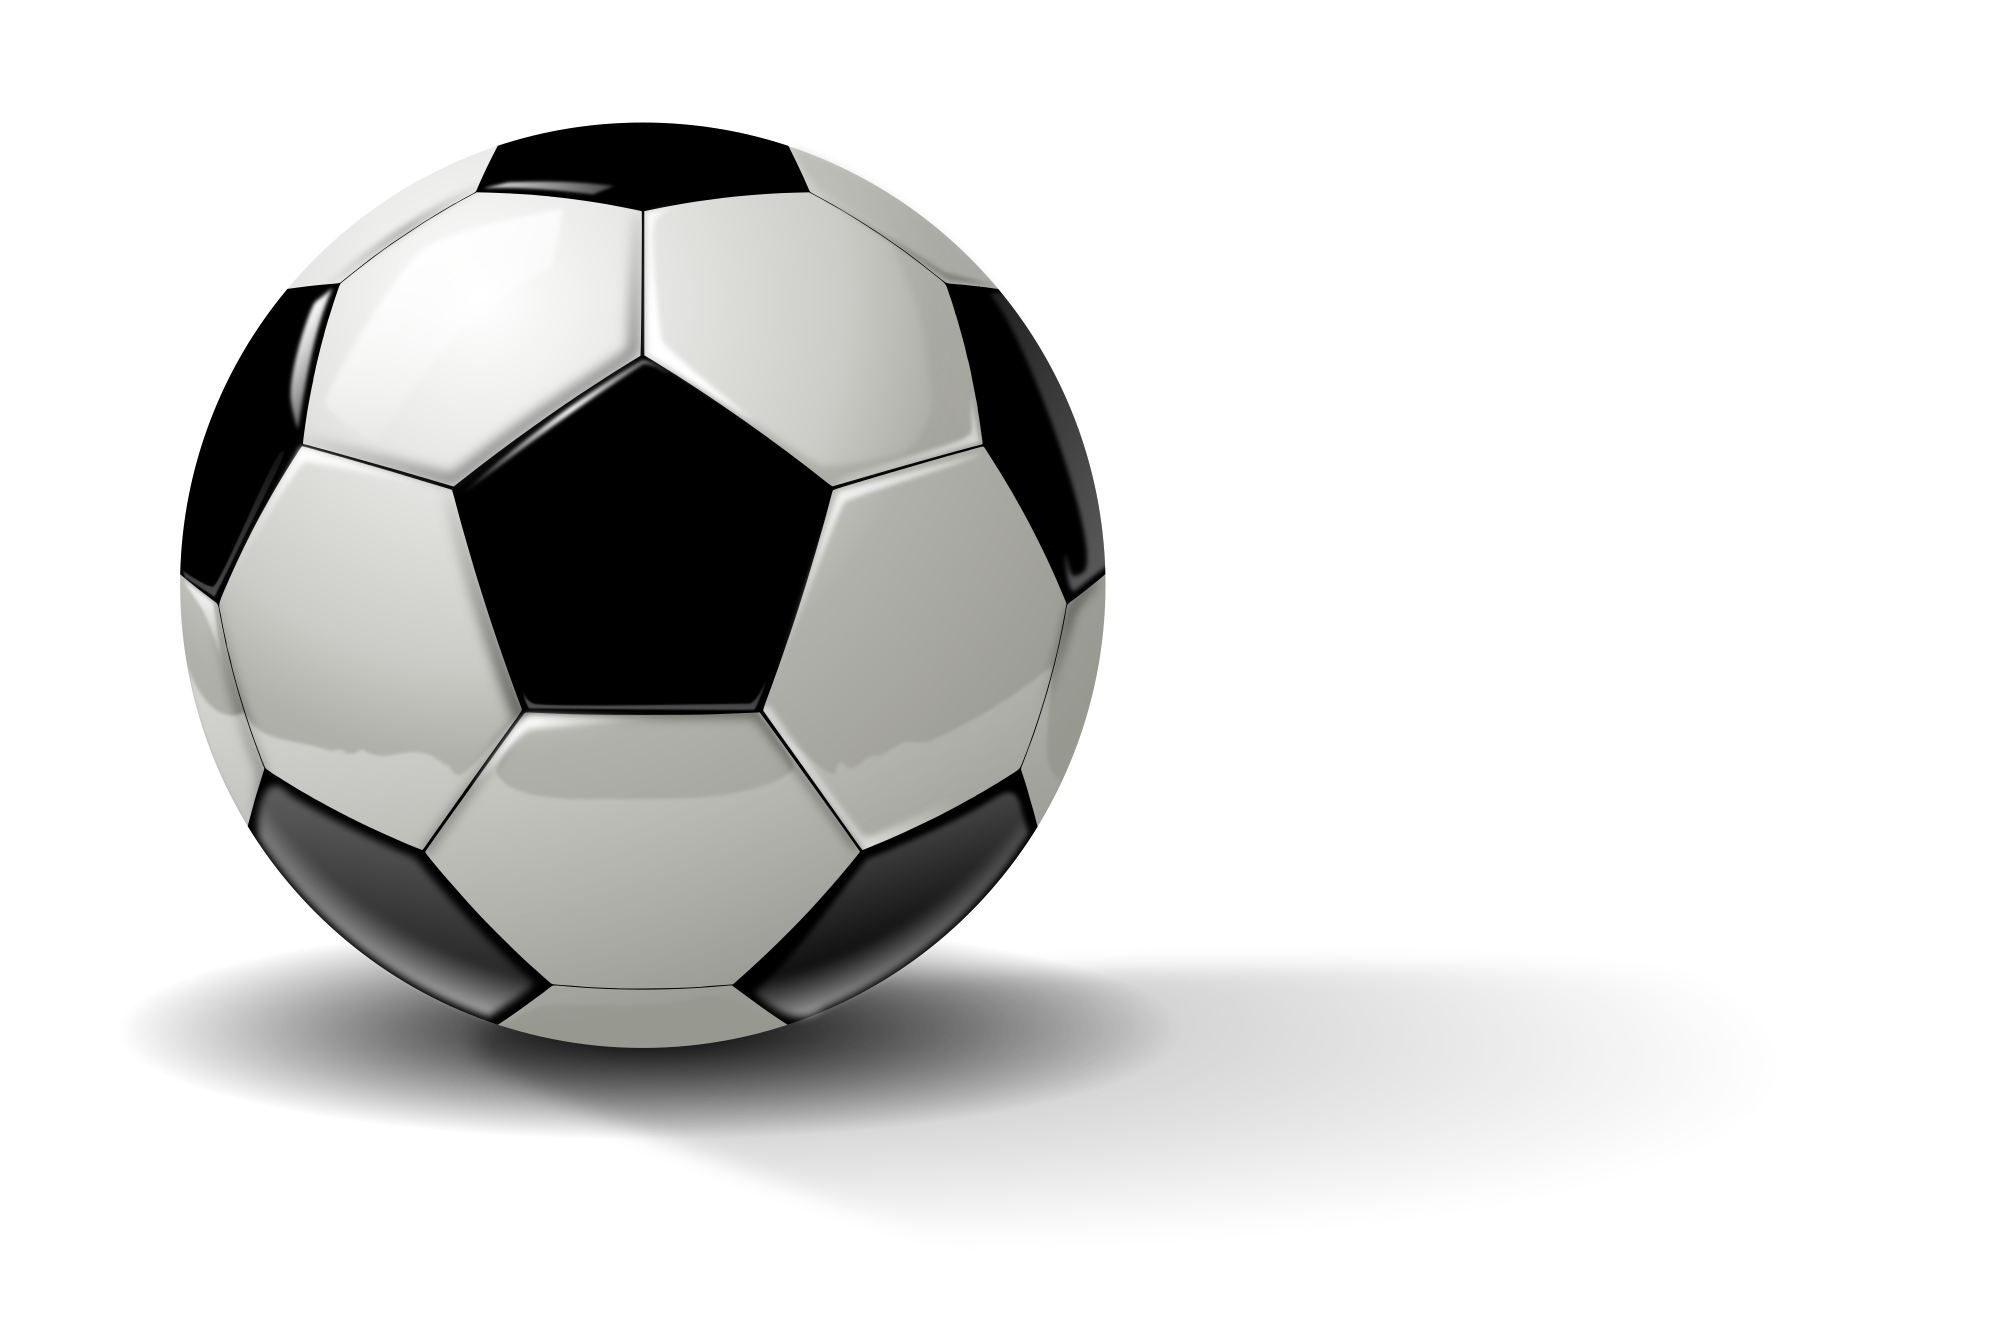 Real Soccer Ball Clipart png free, Real Soccer Ball transparent png